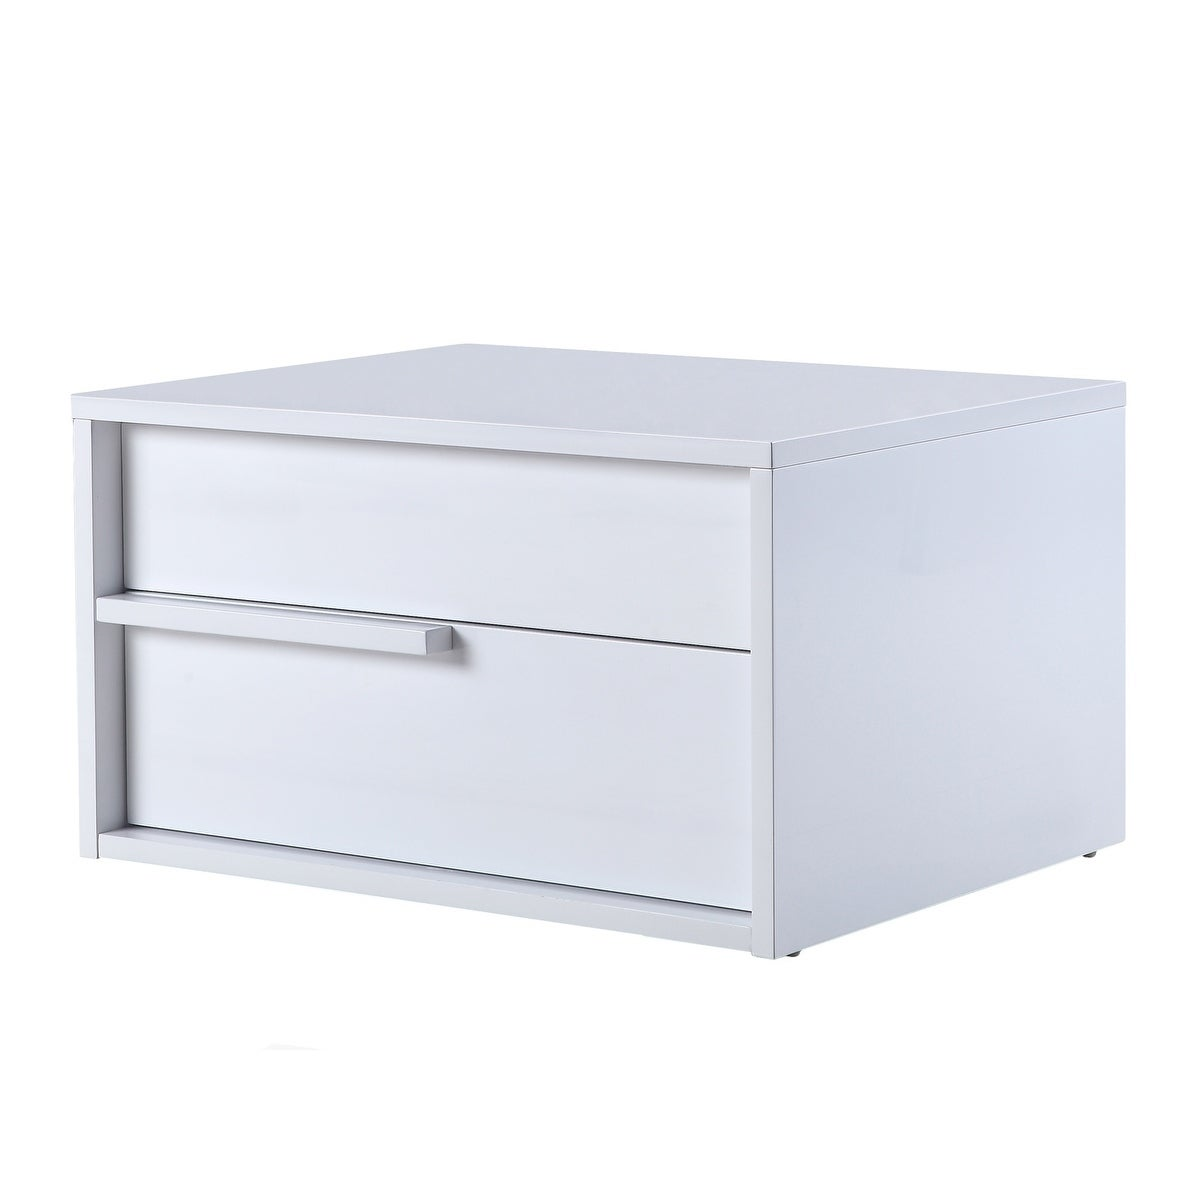 ideas regarding file home rustic architecture throughout collection considering modern cabinet white from lacquer prepare residence